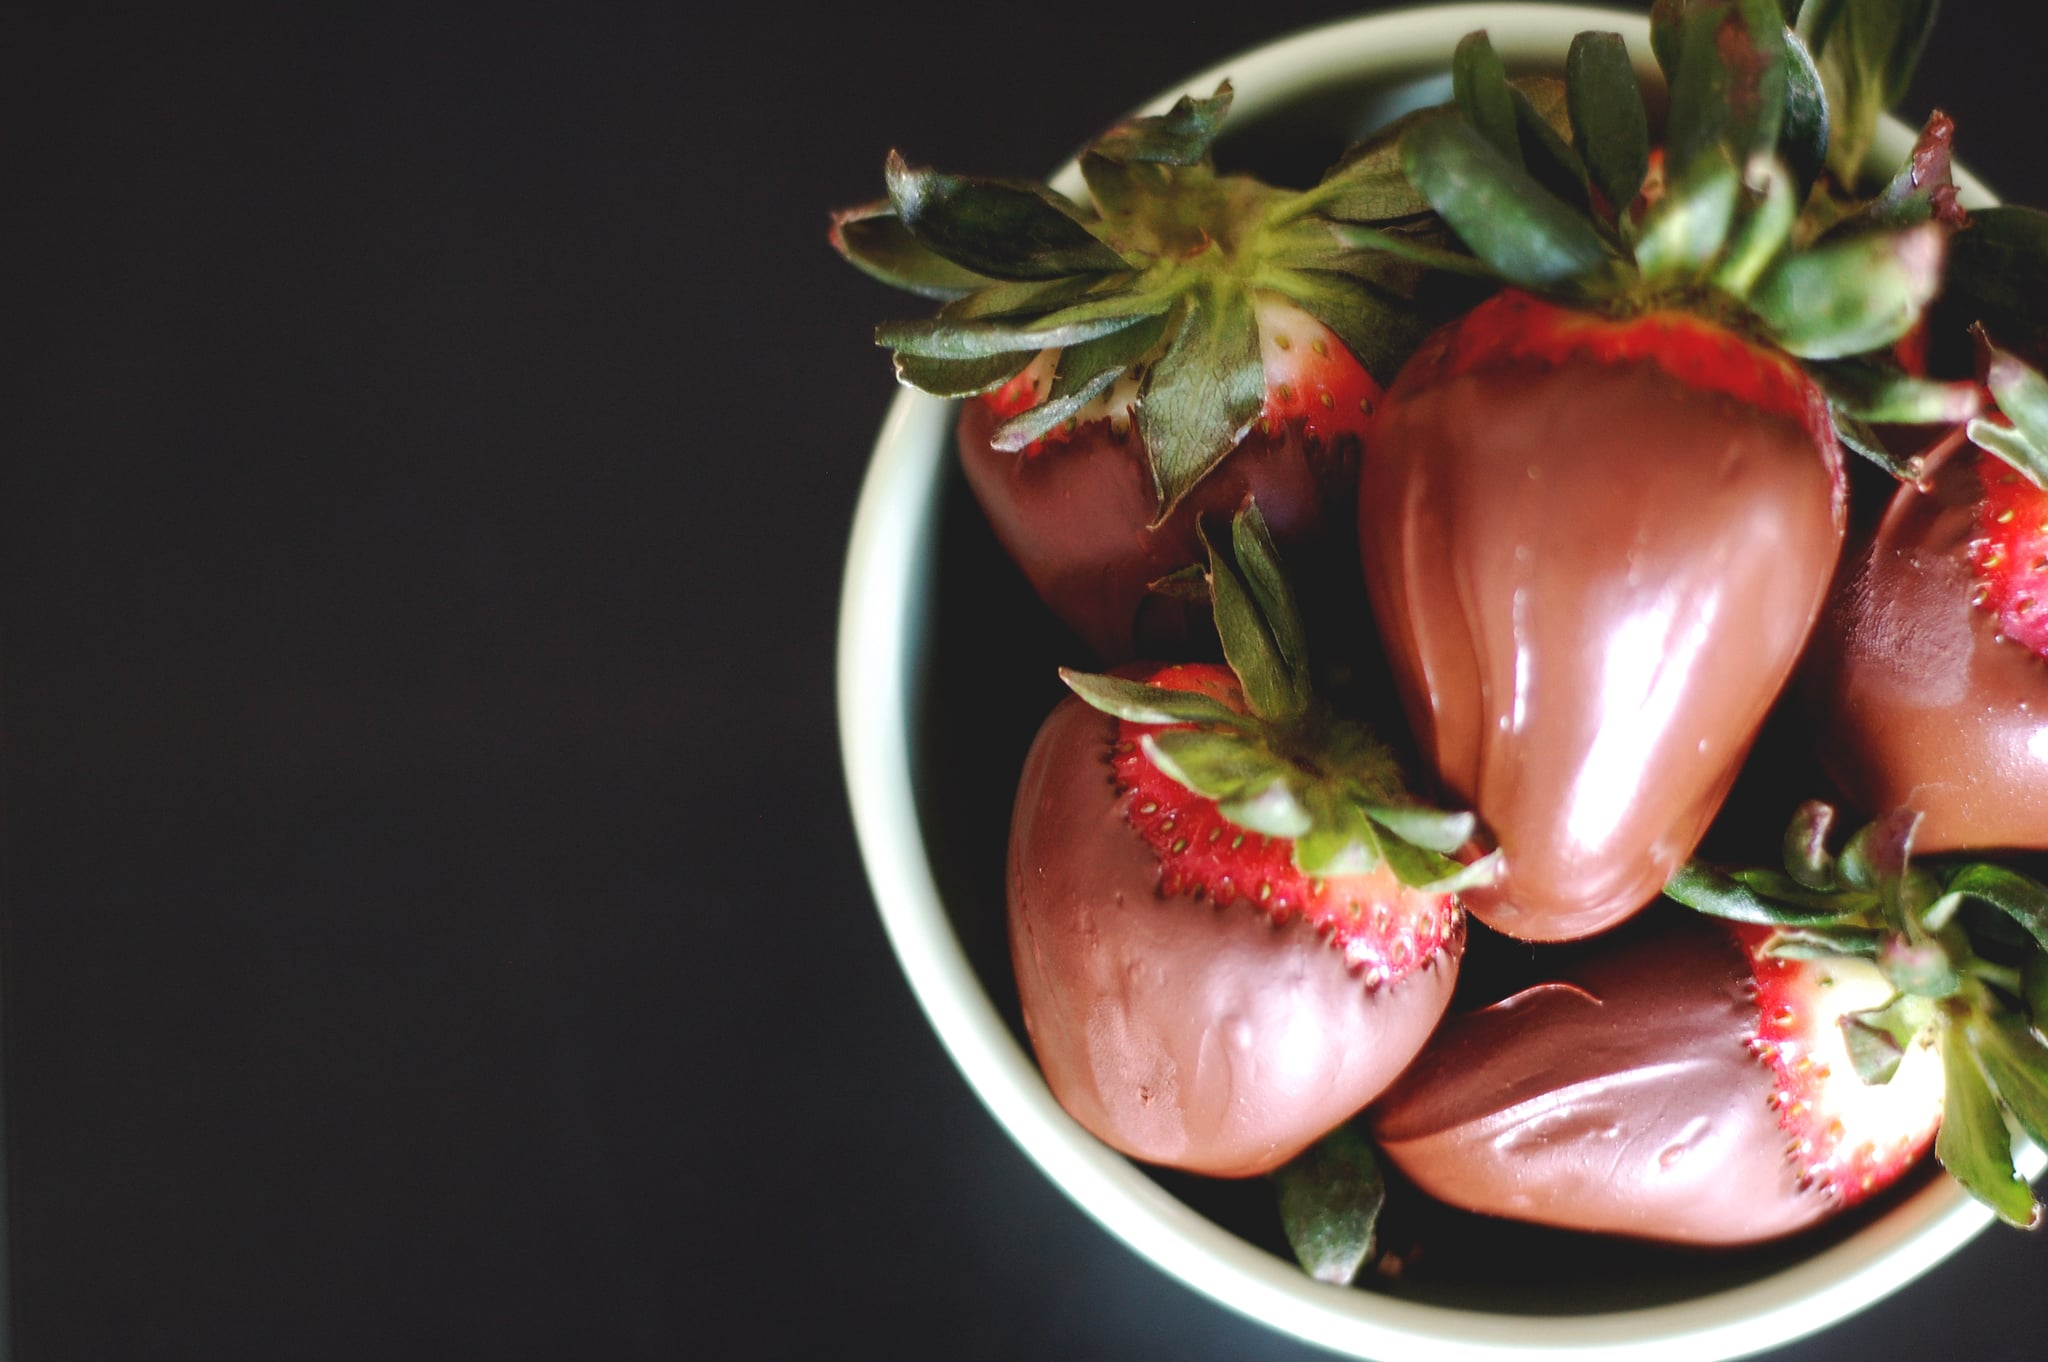 Chocolate Covered Strawberries 50 Ideas For Homemade Edible Valentine S Day Gifts Popsugar Food Photo 5